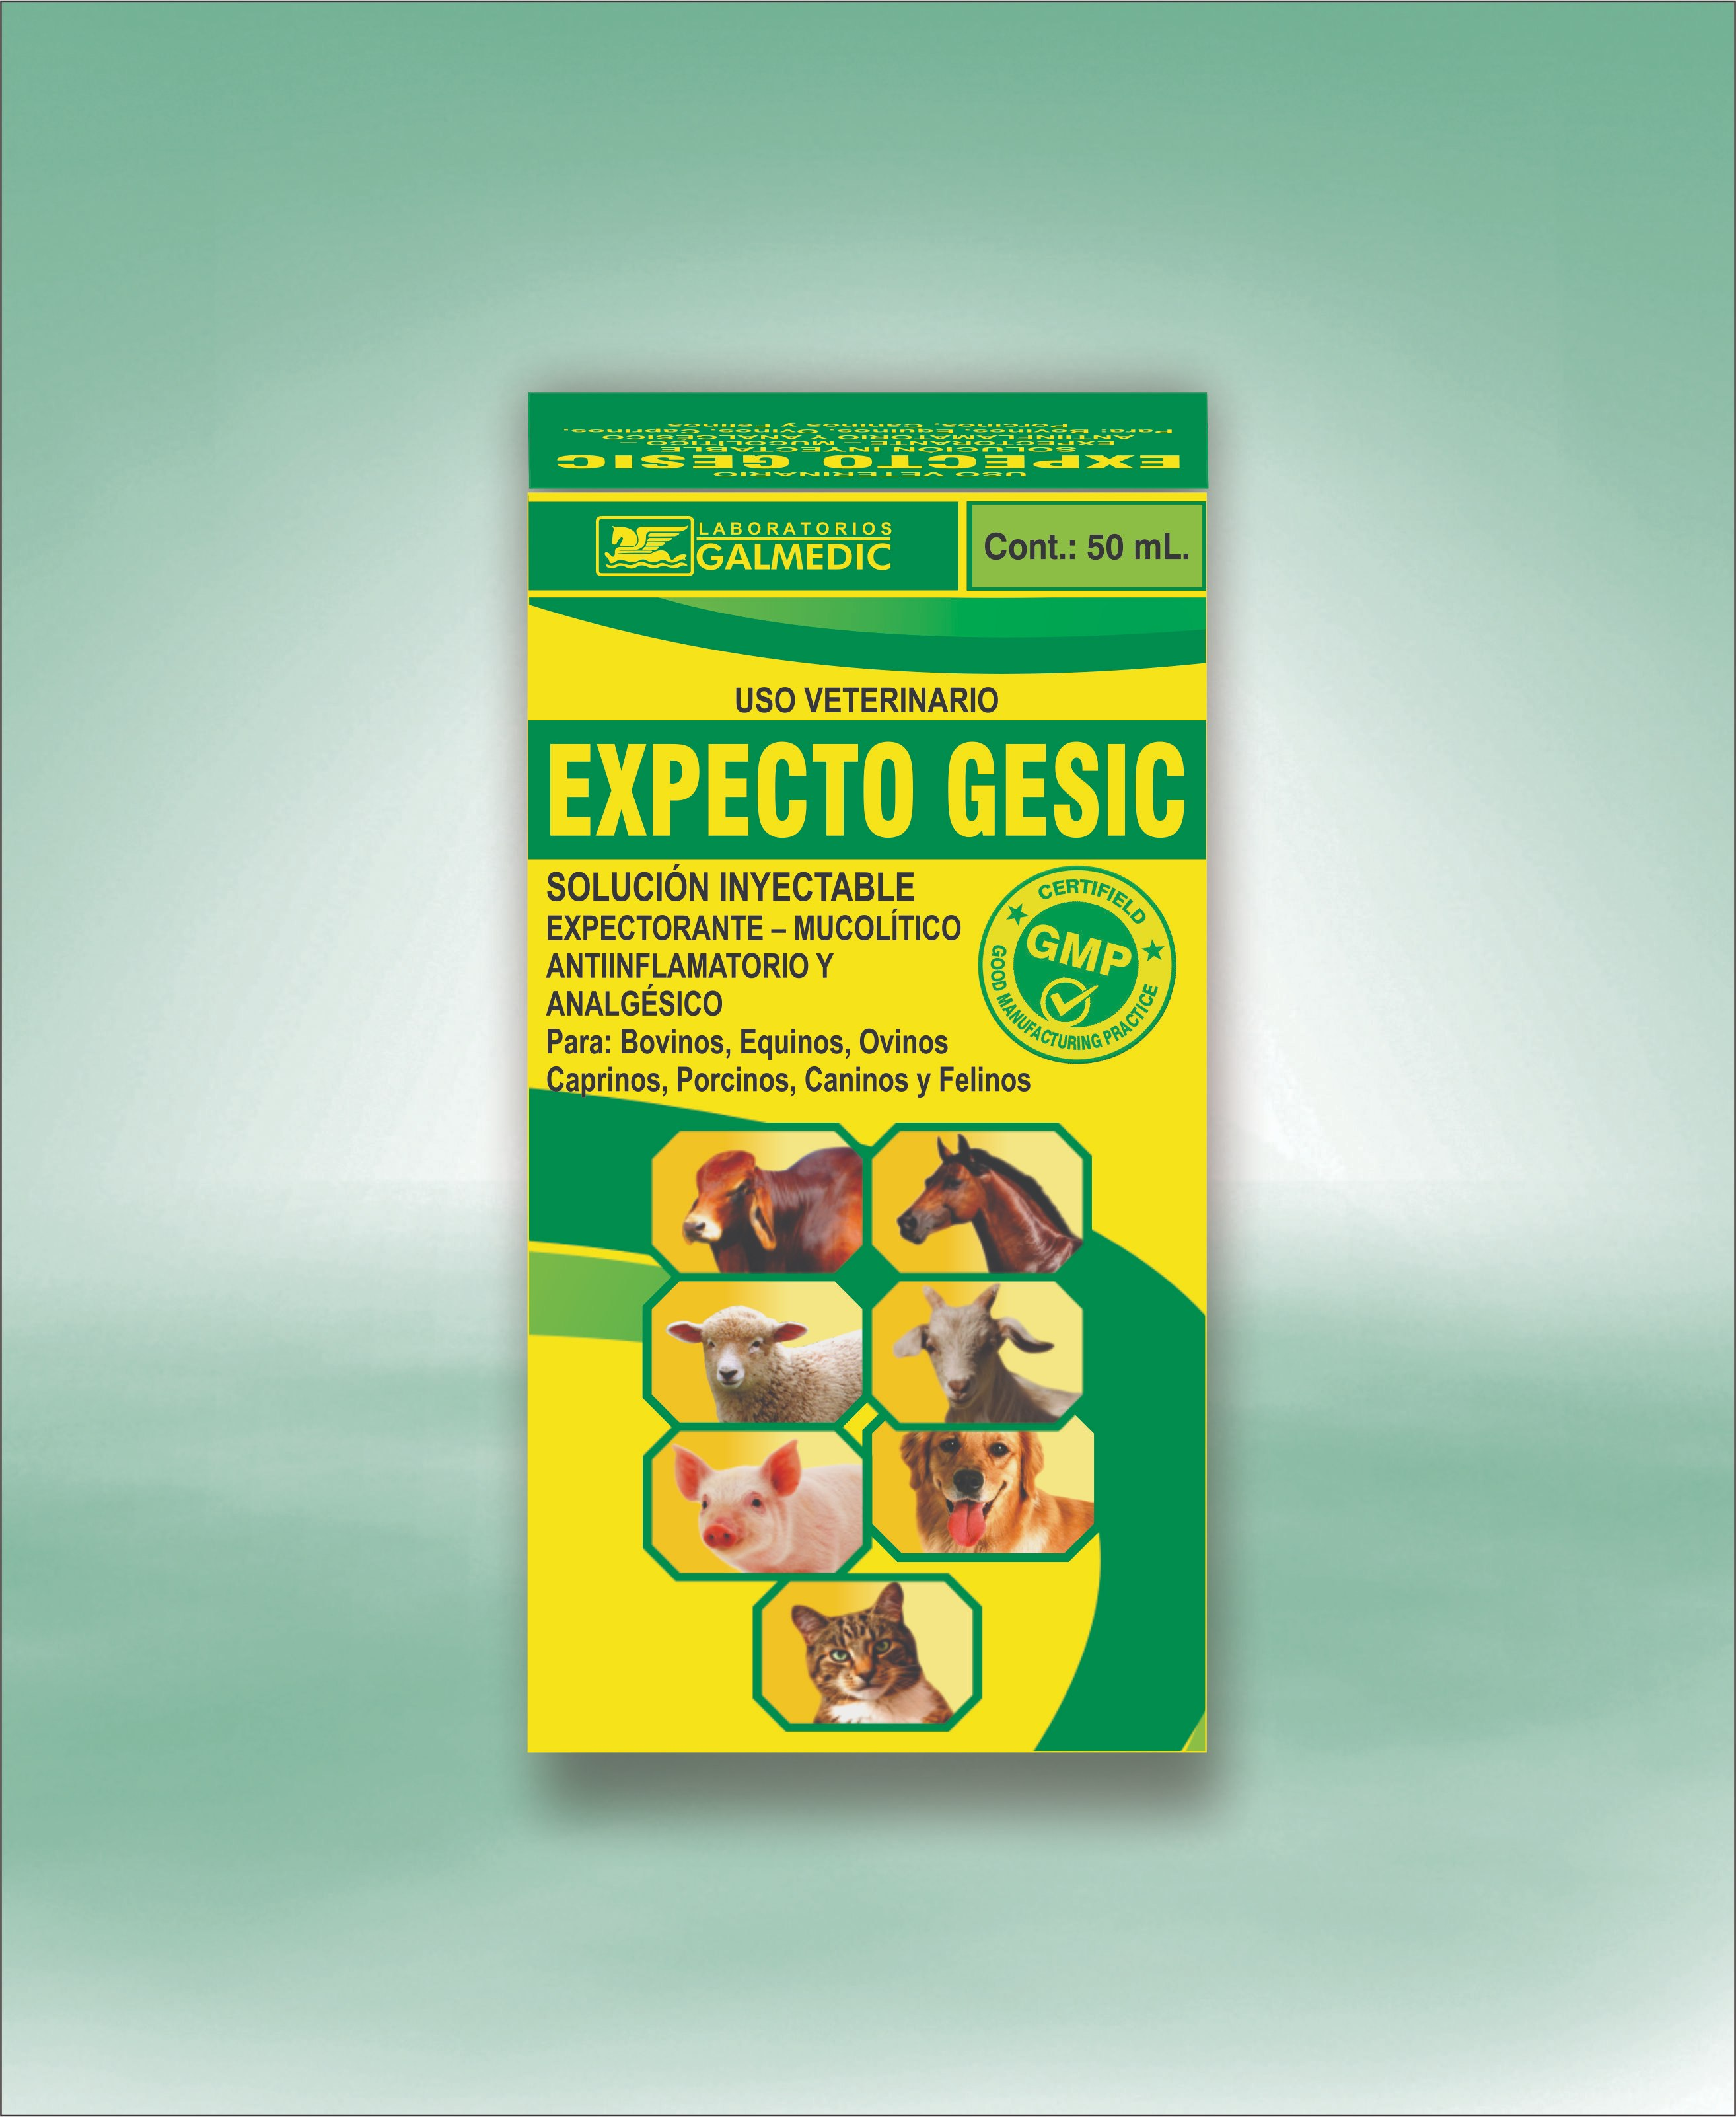 EXPECTO GESIC